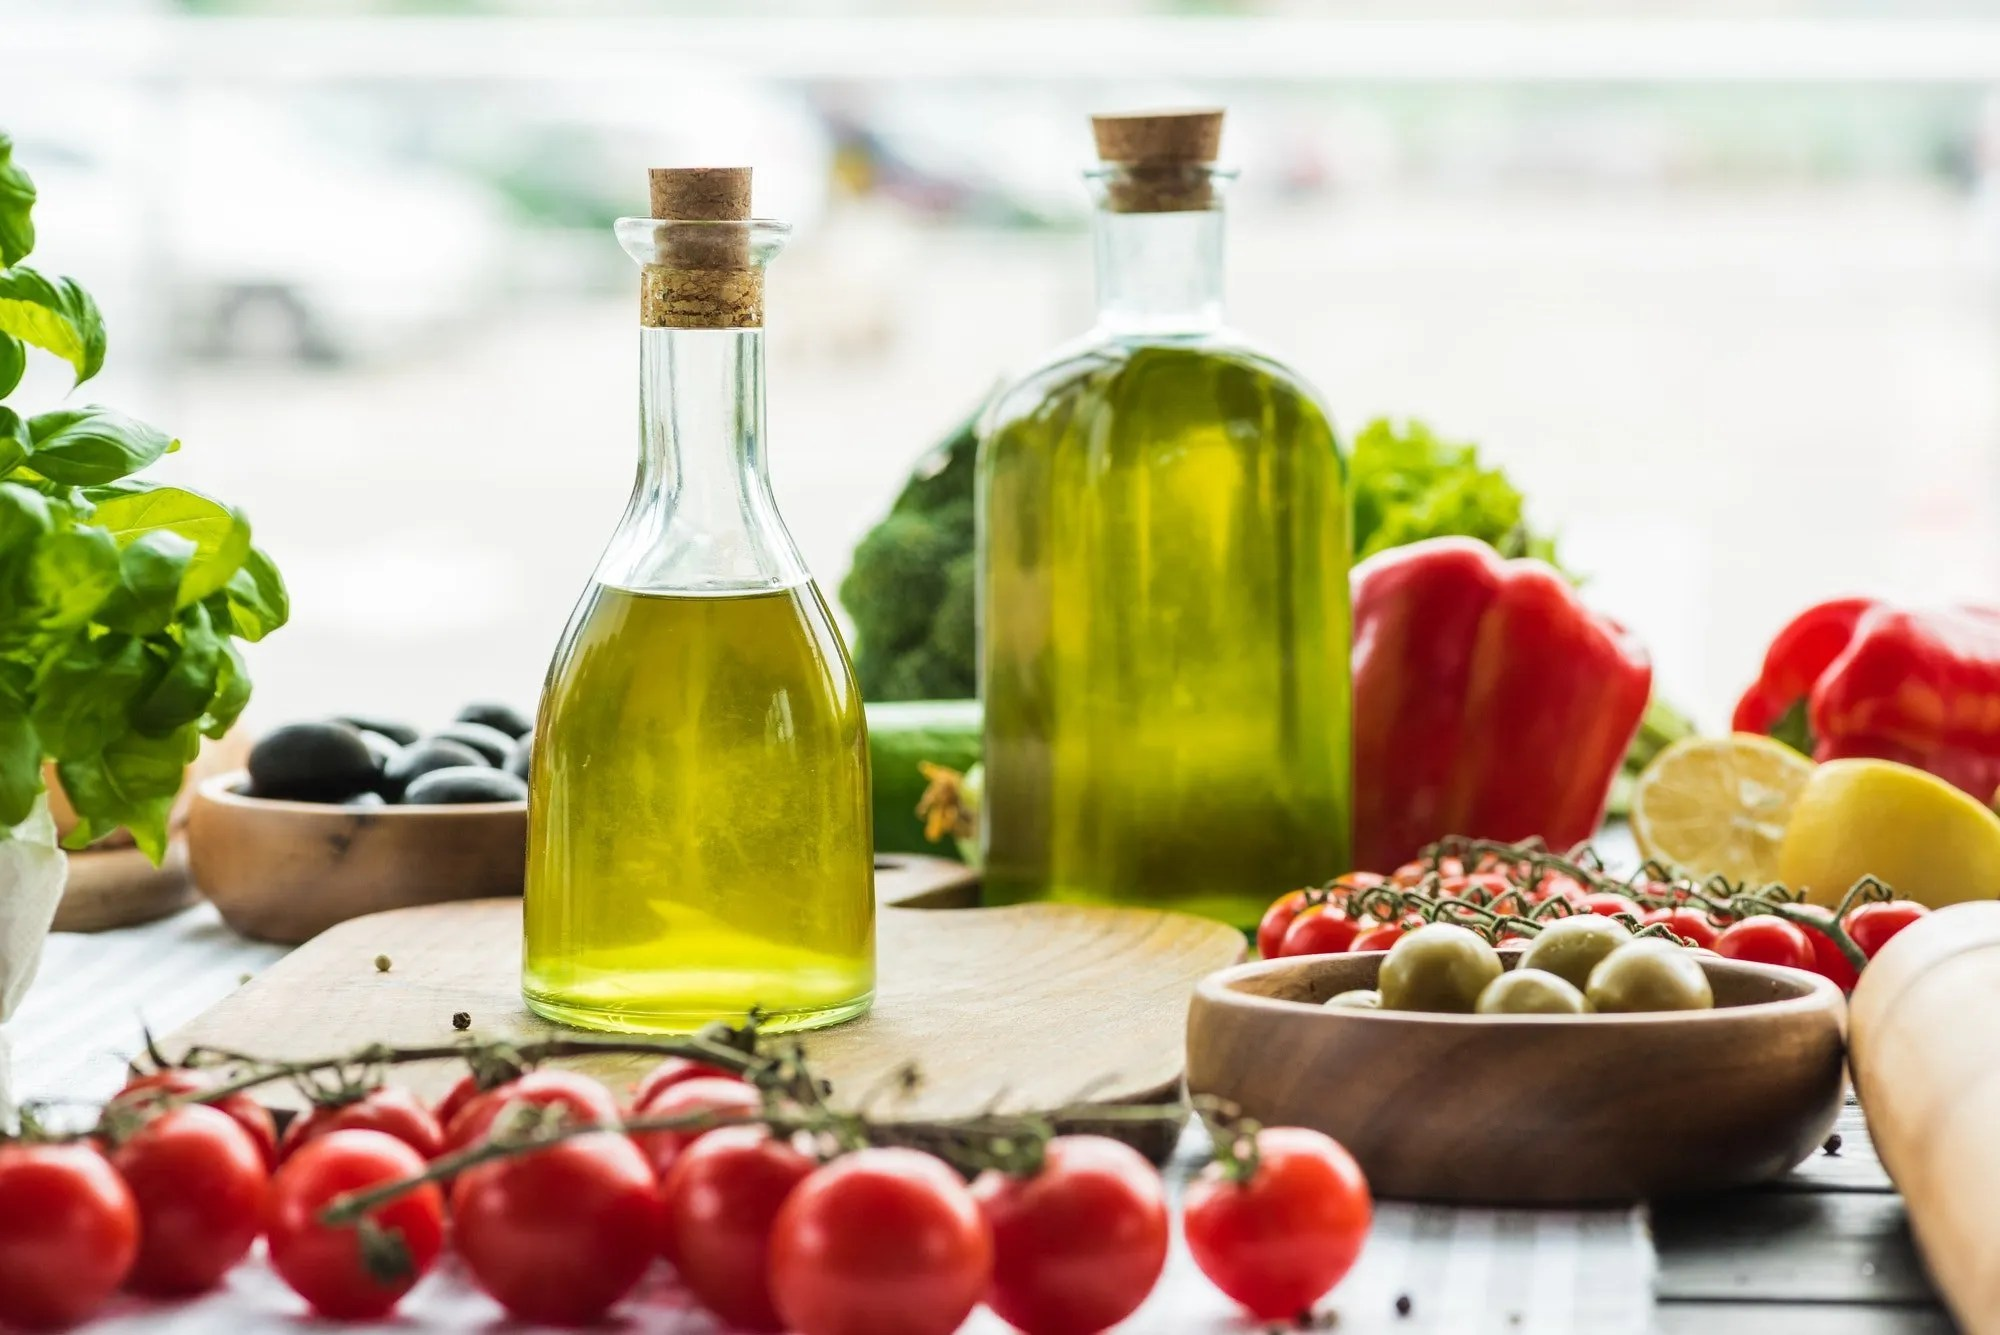 olive oil bottles with vegetables on wooden table